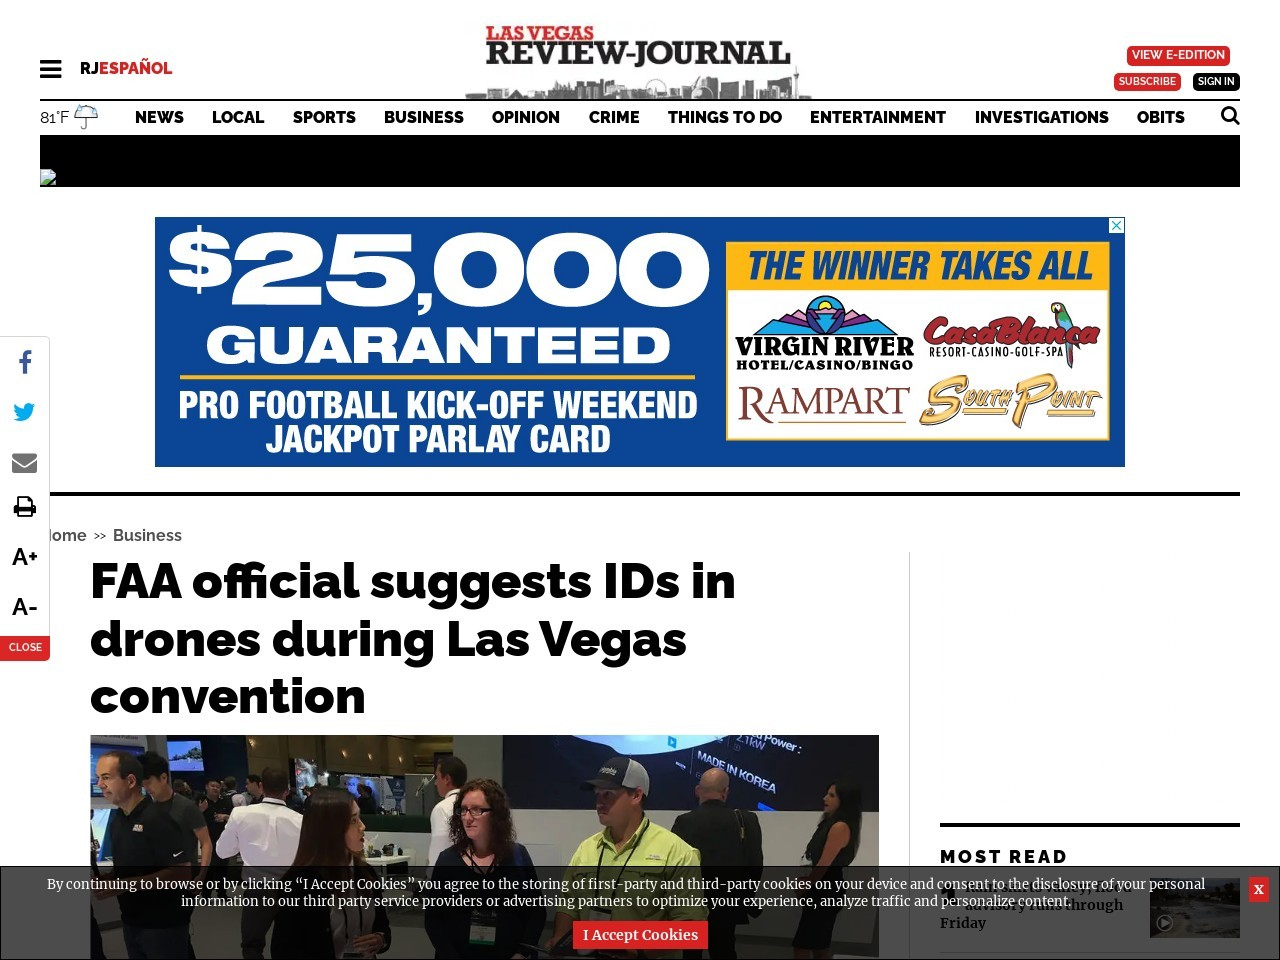 FAA official suggests IDs in drones during Las Vegas convention